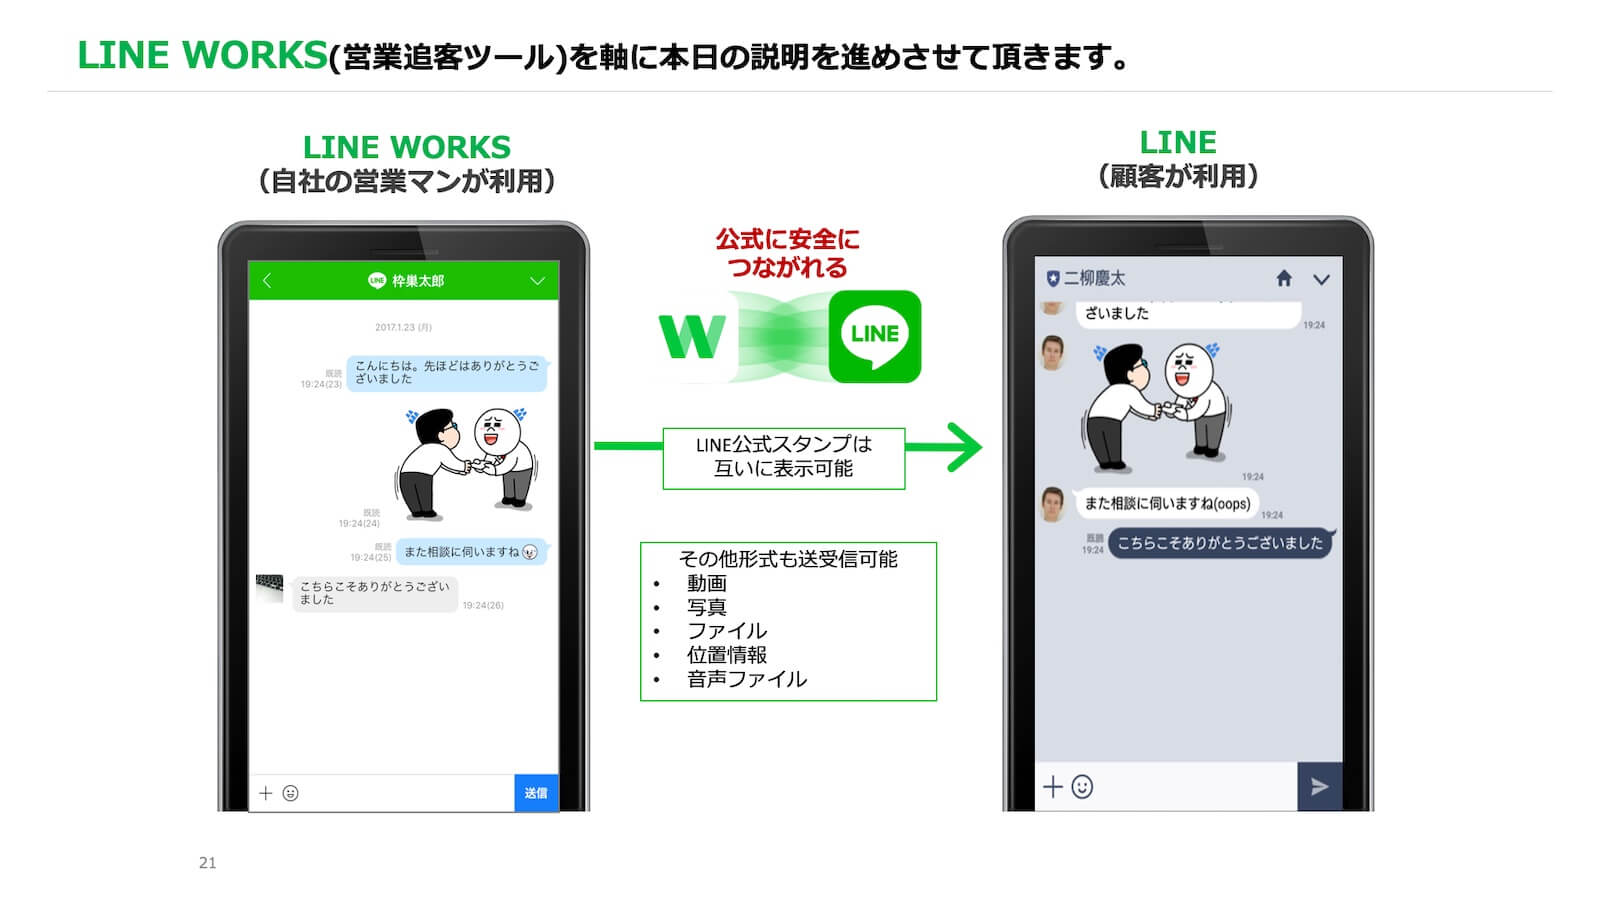 LINE WORKSの説明